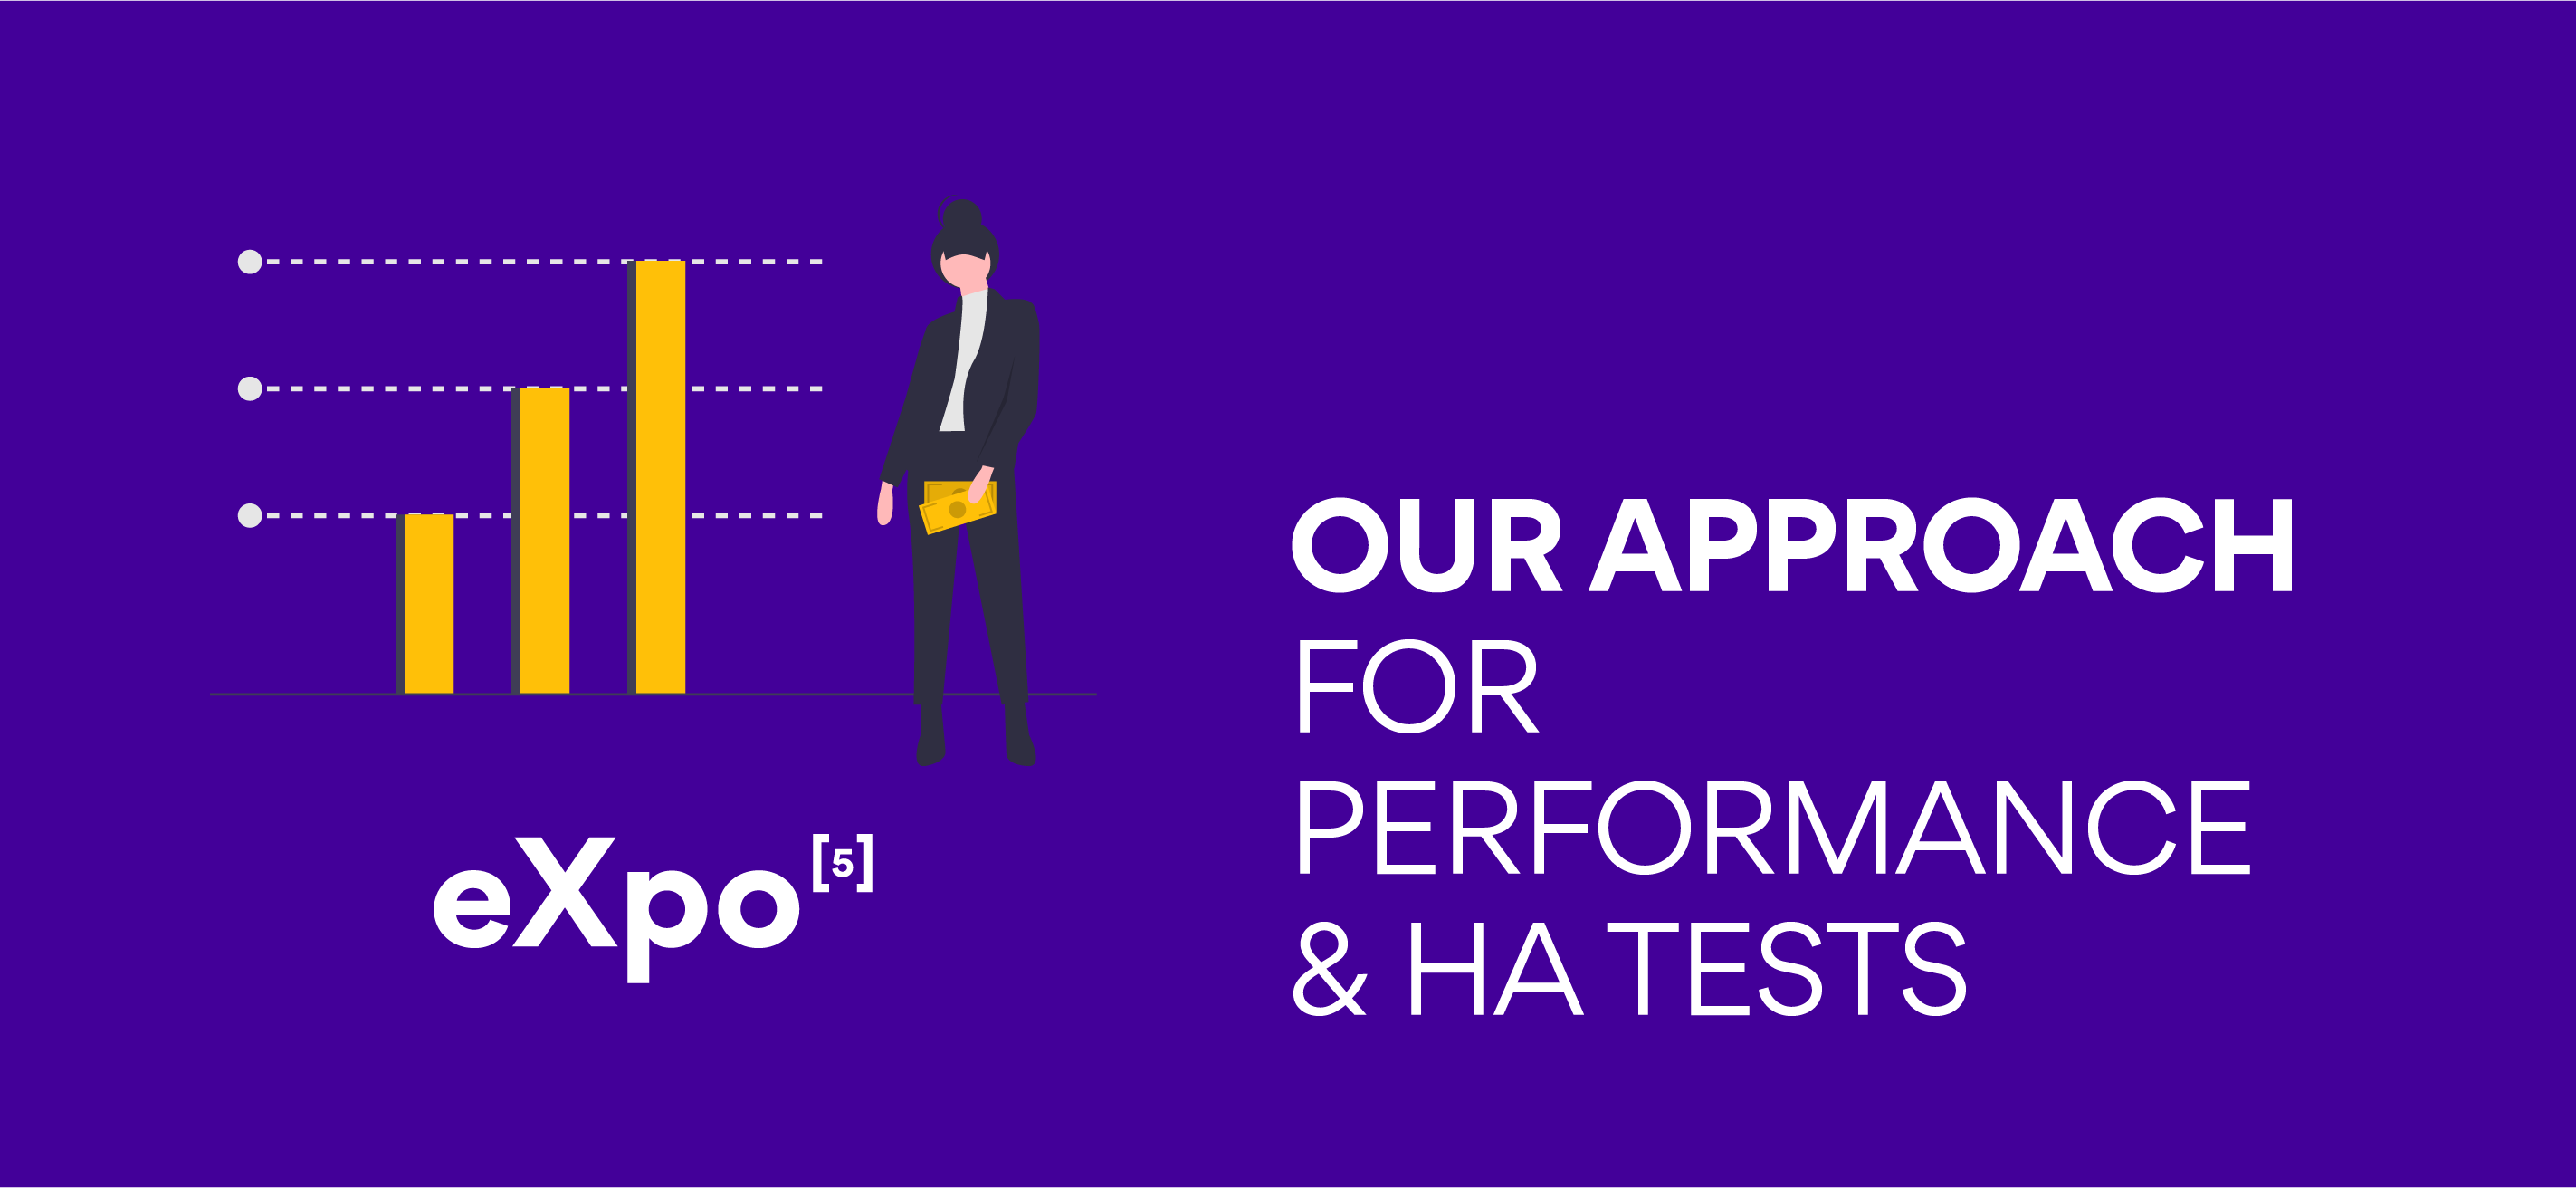 Our Approach to Performance & HA Tests